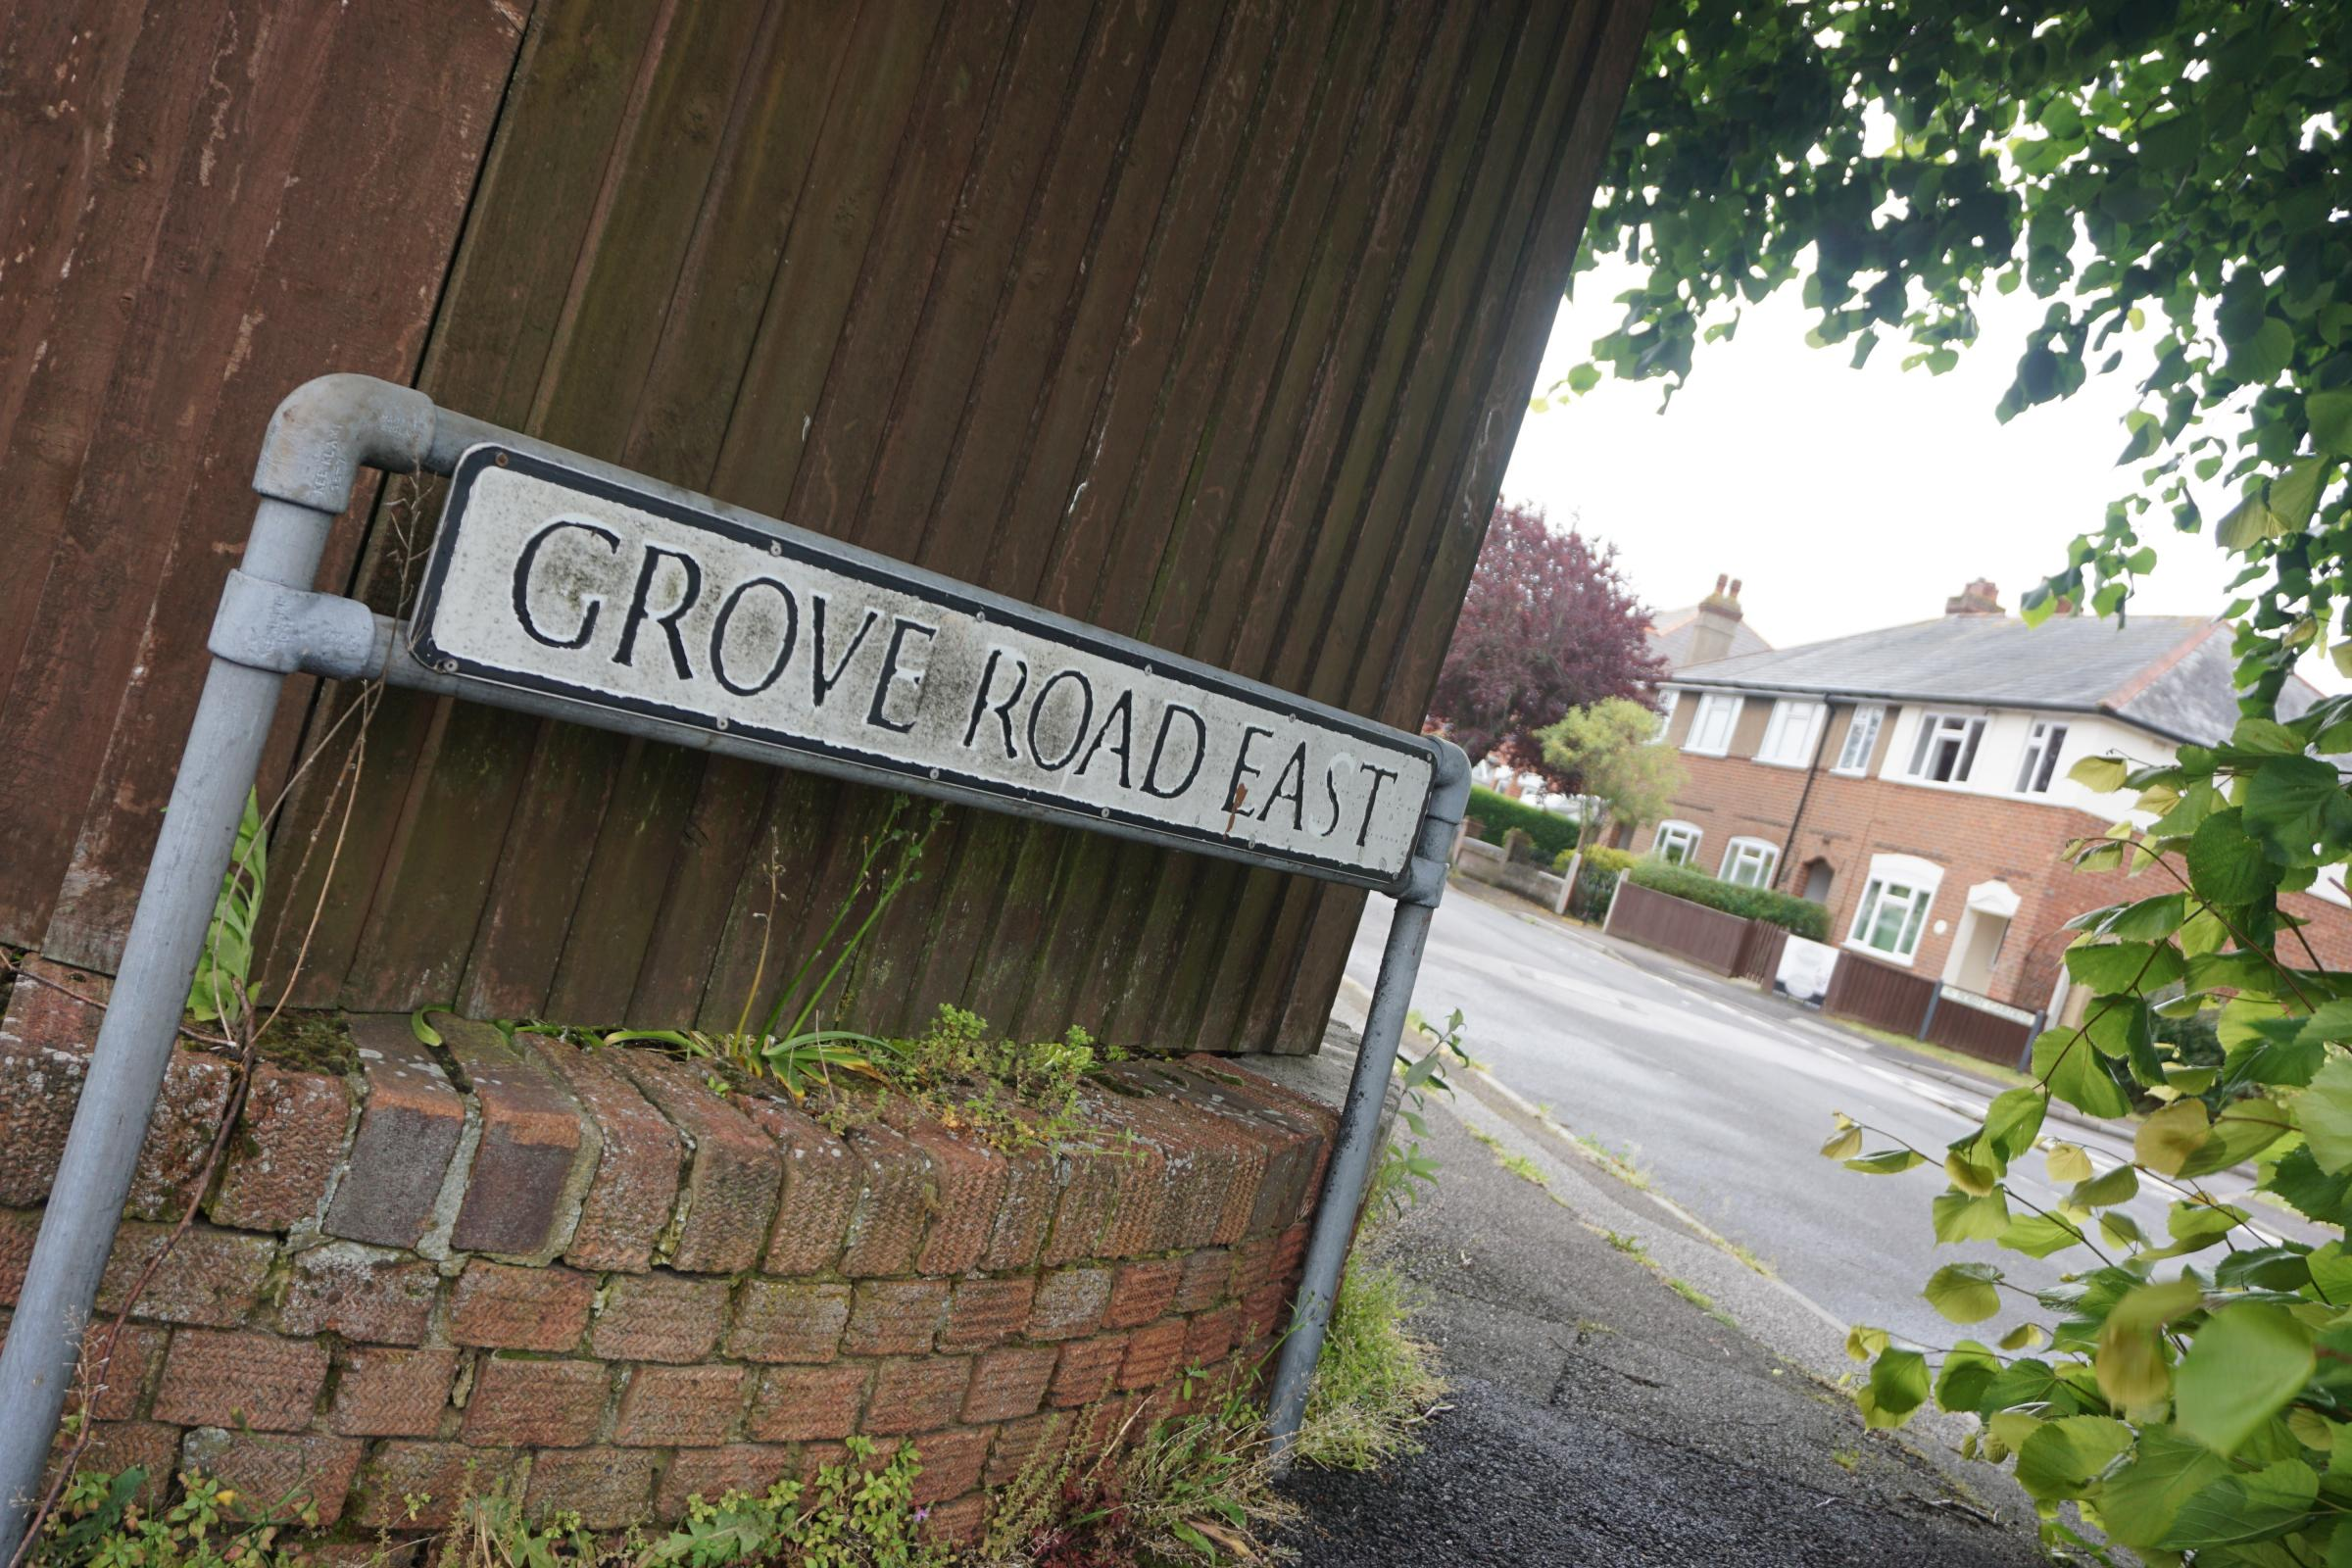 New council's first planning decision is to reject plans to build house in Christchurch garden